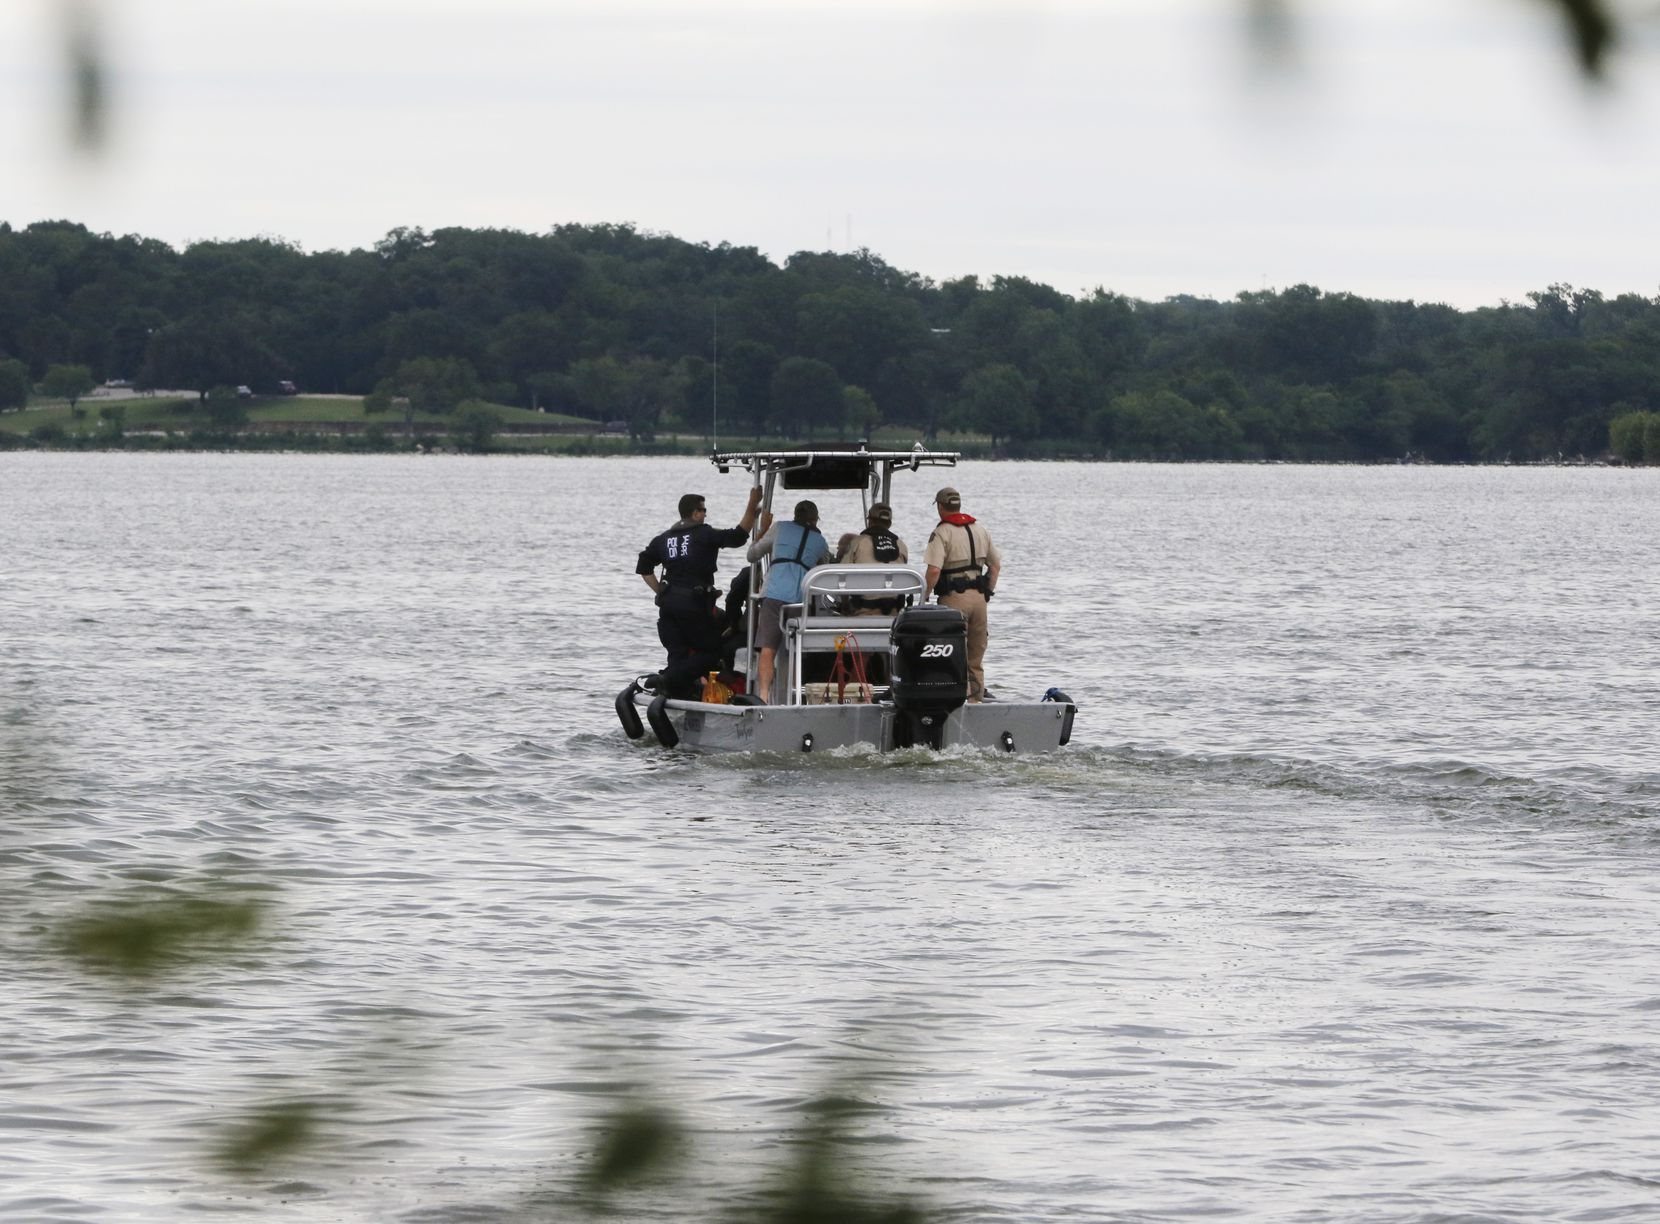 Rescuers search Monday for a man who fell off a sailboat at White Rock Lake on Sunday afternoon.